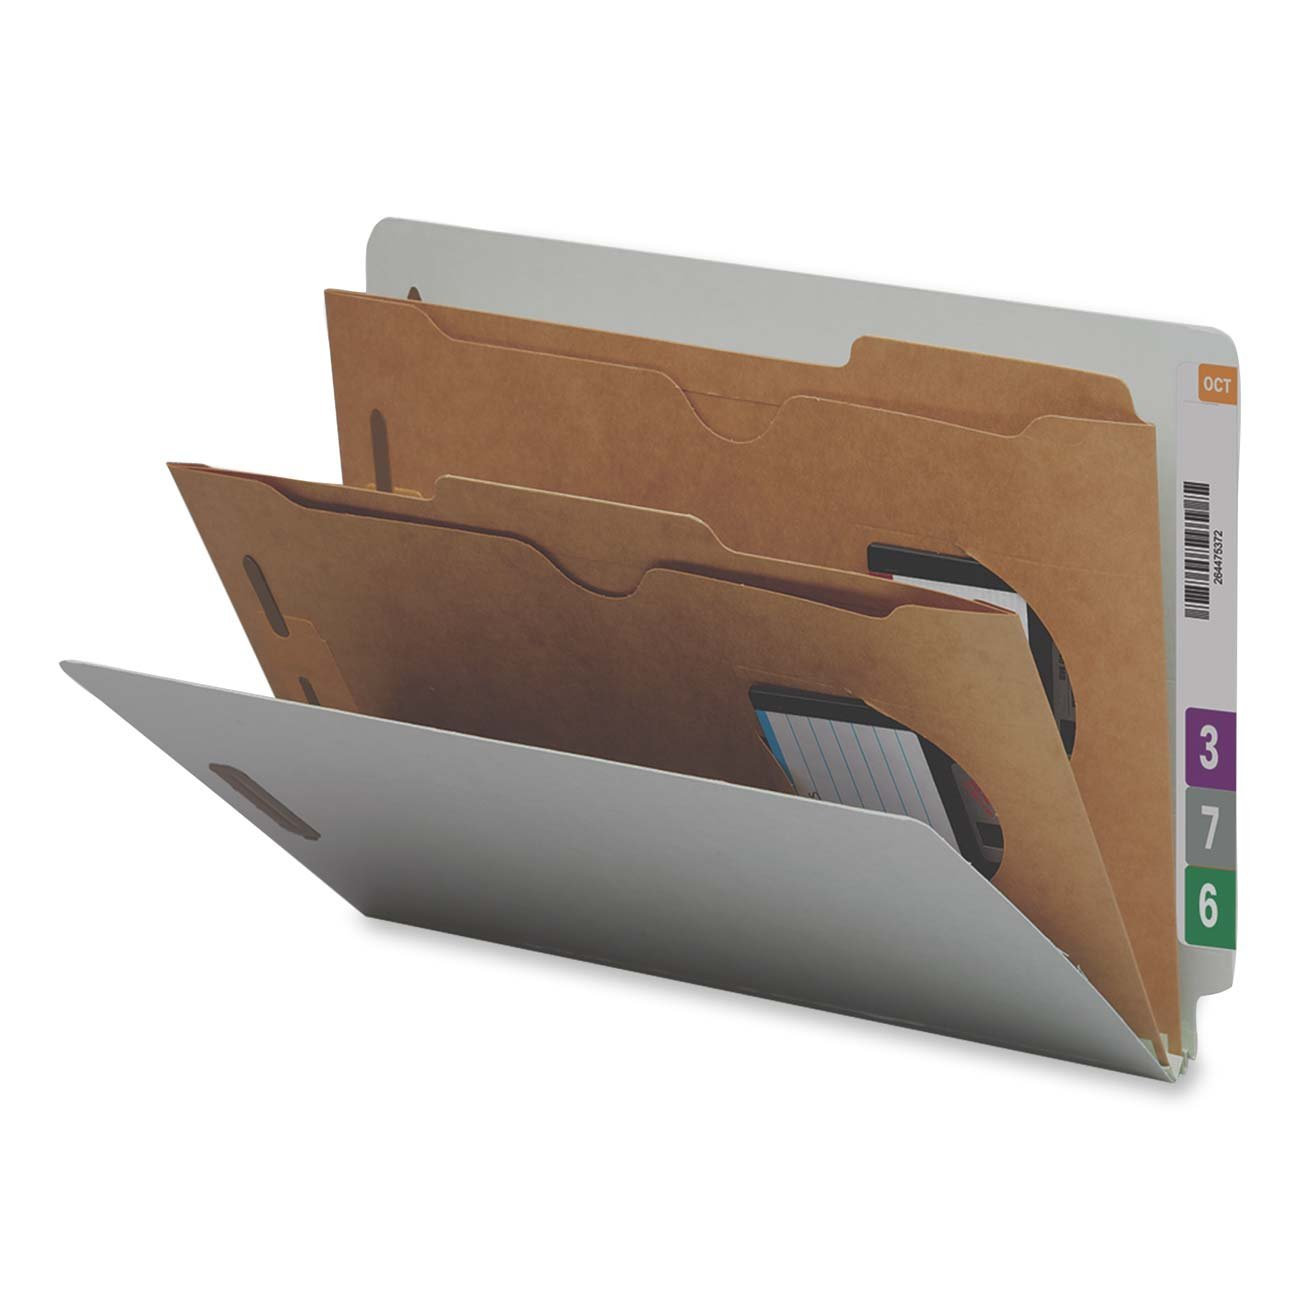 Smead End Tab Classification File Folder with SafeSHIELD Fasteners, 2 Pocket-Style Dividers, 2'' Expansion, Legal Size, Gray/Green, 10 per Box (29710) by Smead